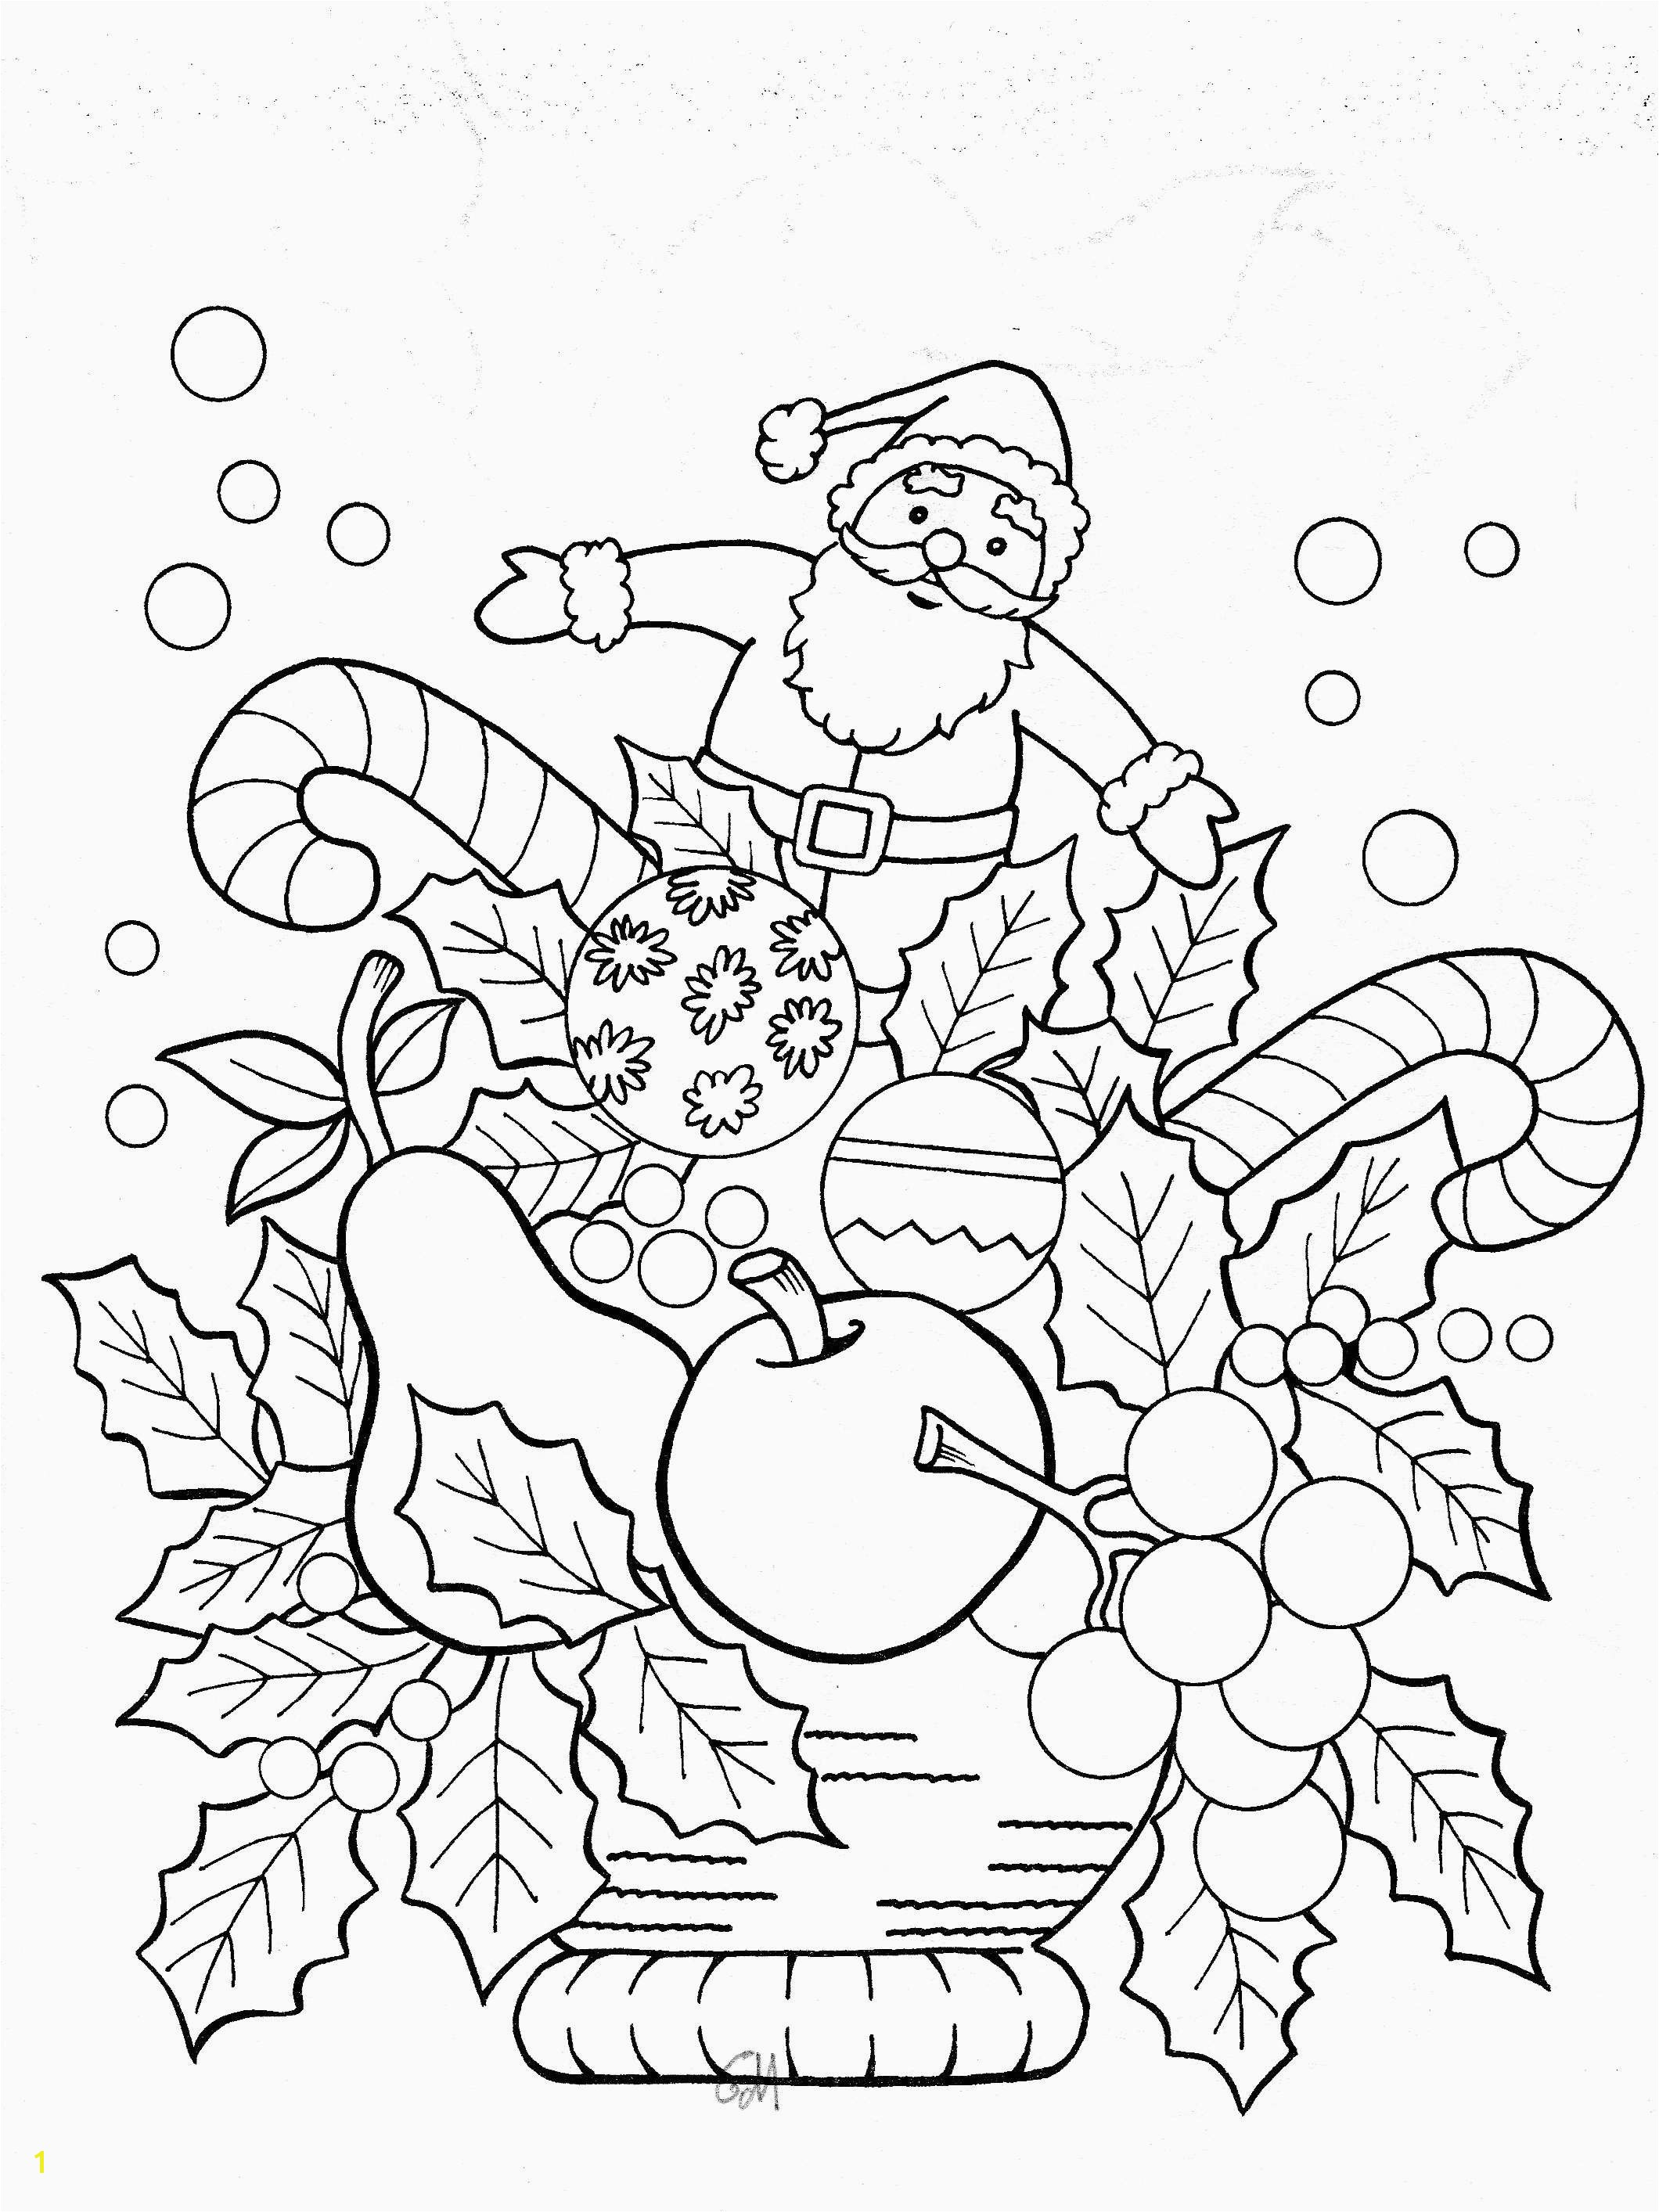 Nativity Coloring Pages for Kids Luxury Coloring Pages Christmas Stuff Katesgrove